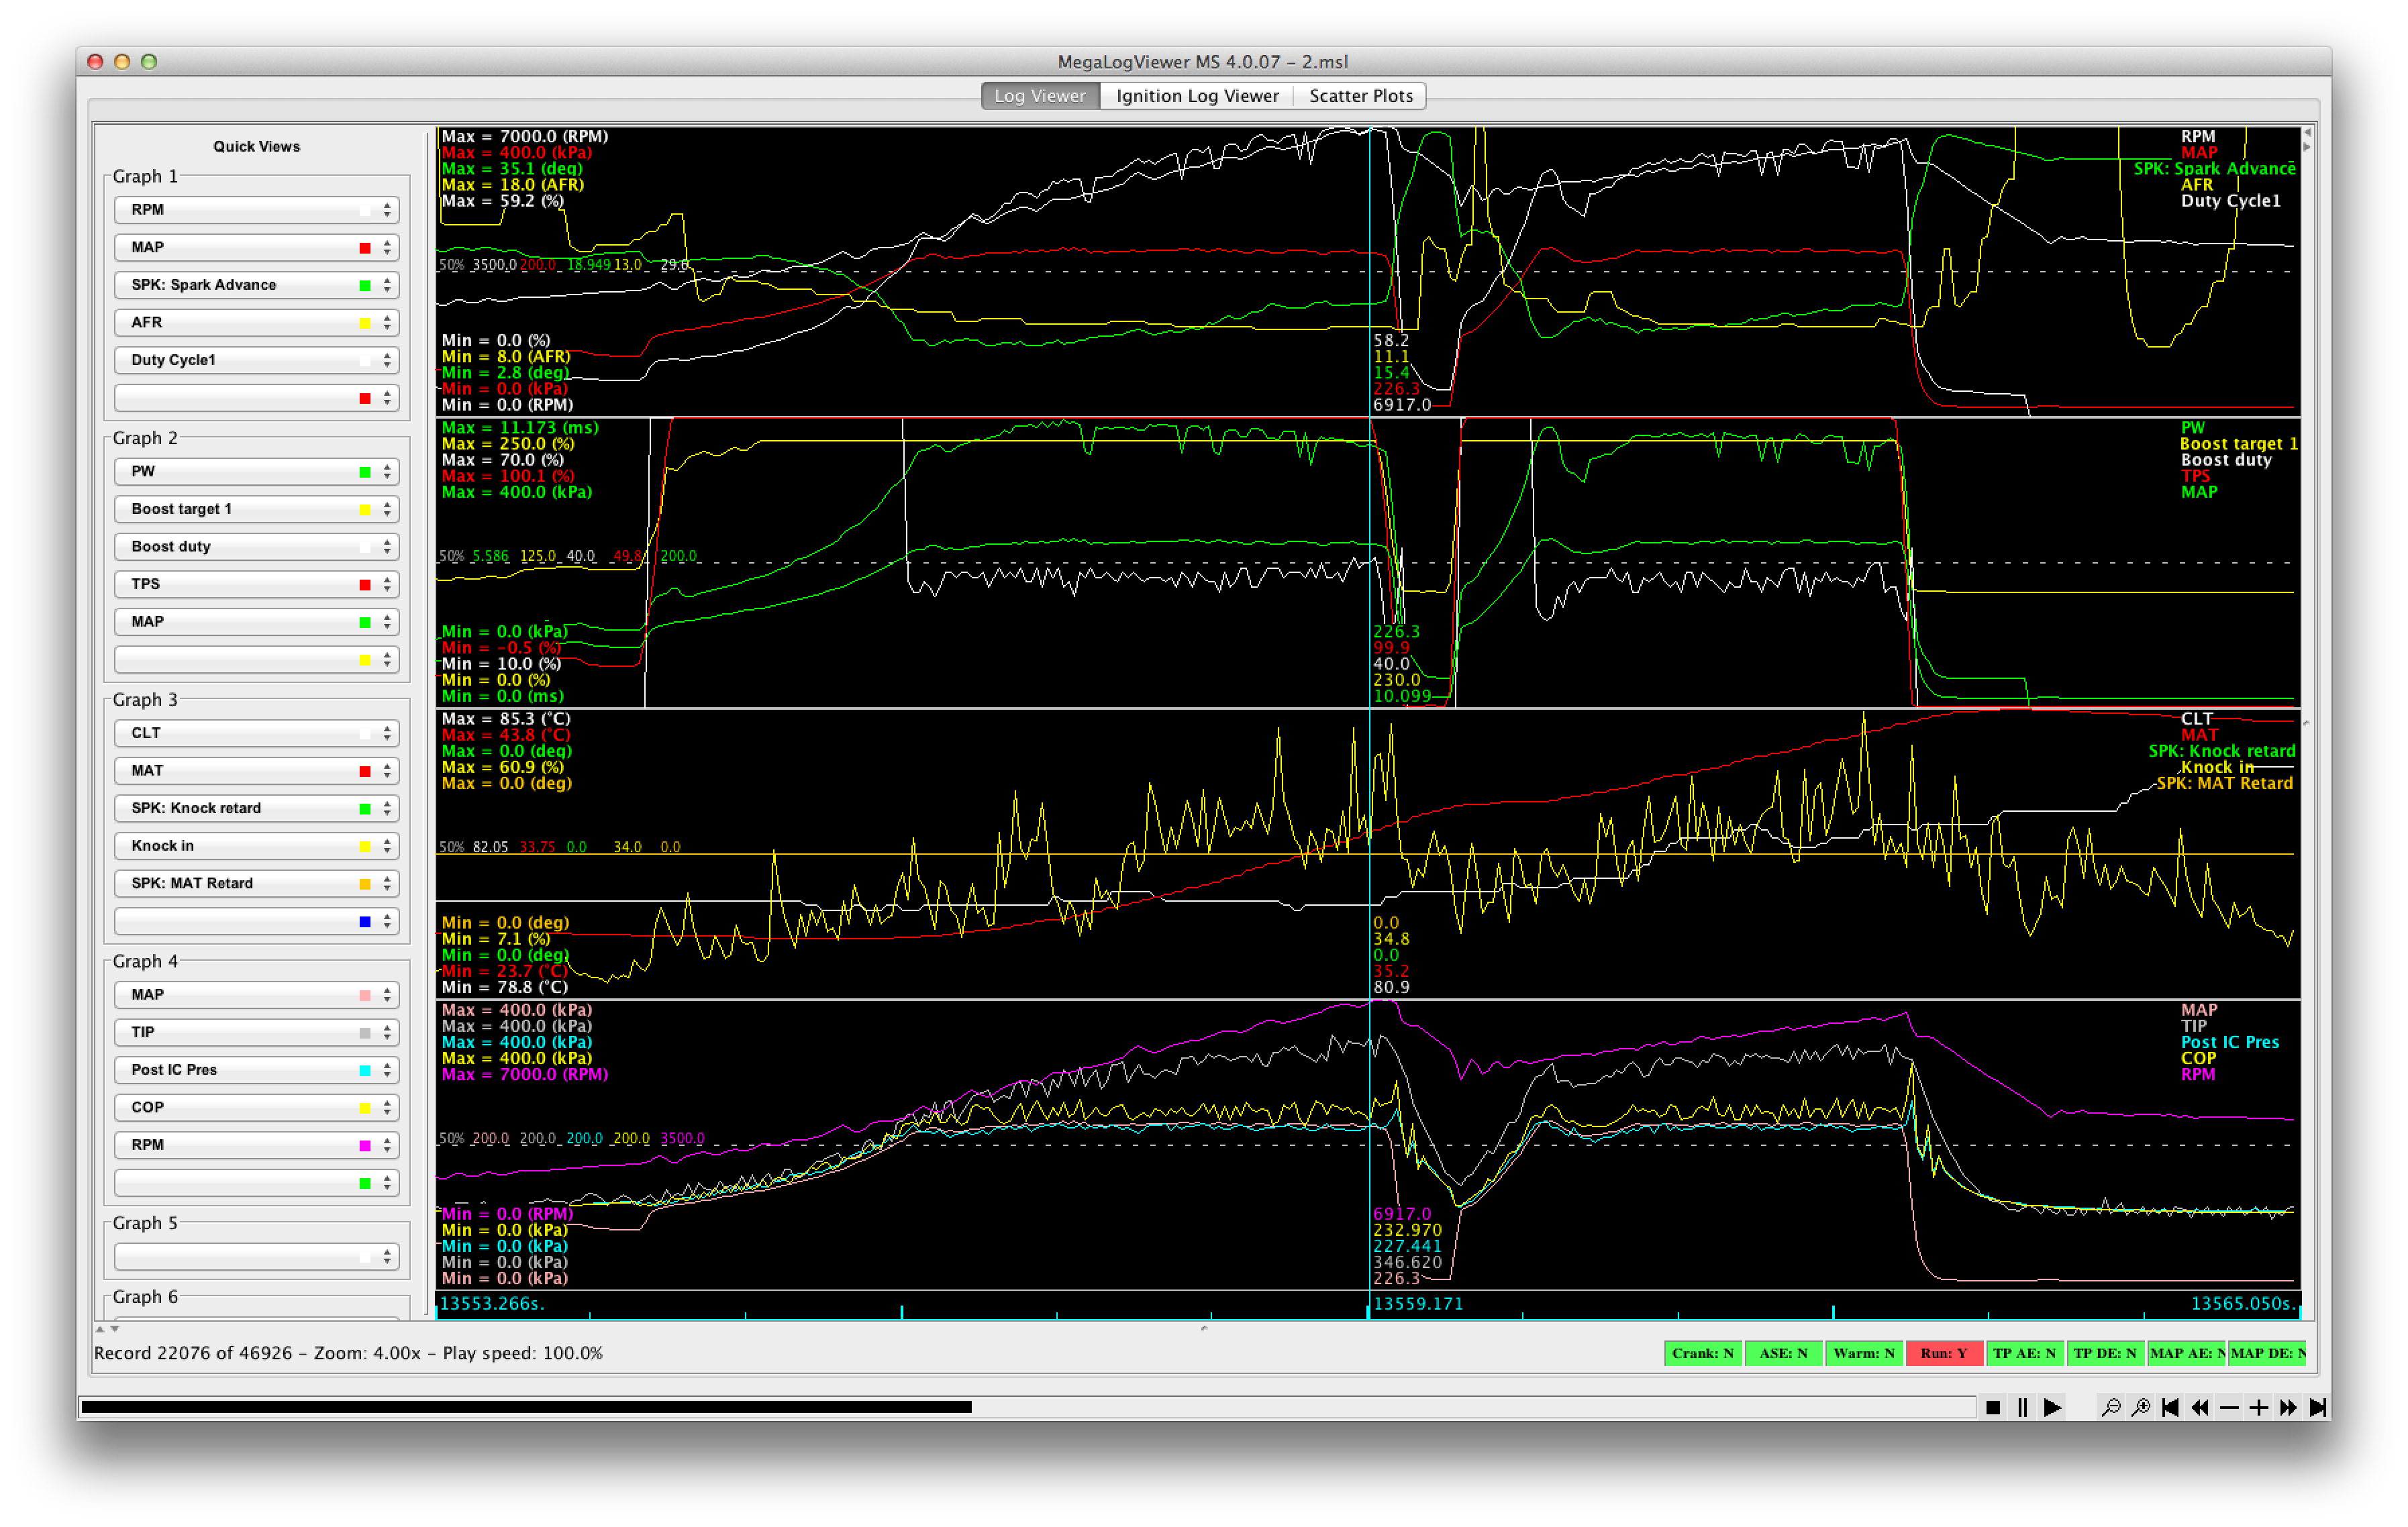 Ians 99 post tb screw re rebuild page 11 miata turbo forum to a couple of spare inputs on the ms3 did a little surgery on the log file to convert the raw voltage output to kpa and got this look at graph 4 nvjuhfo Gallery